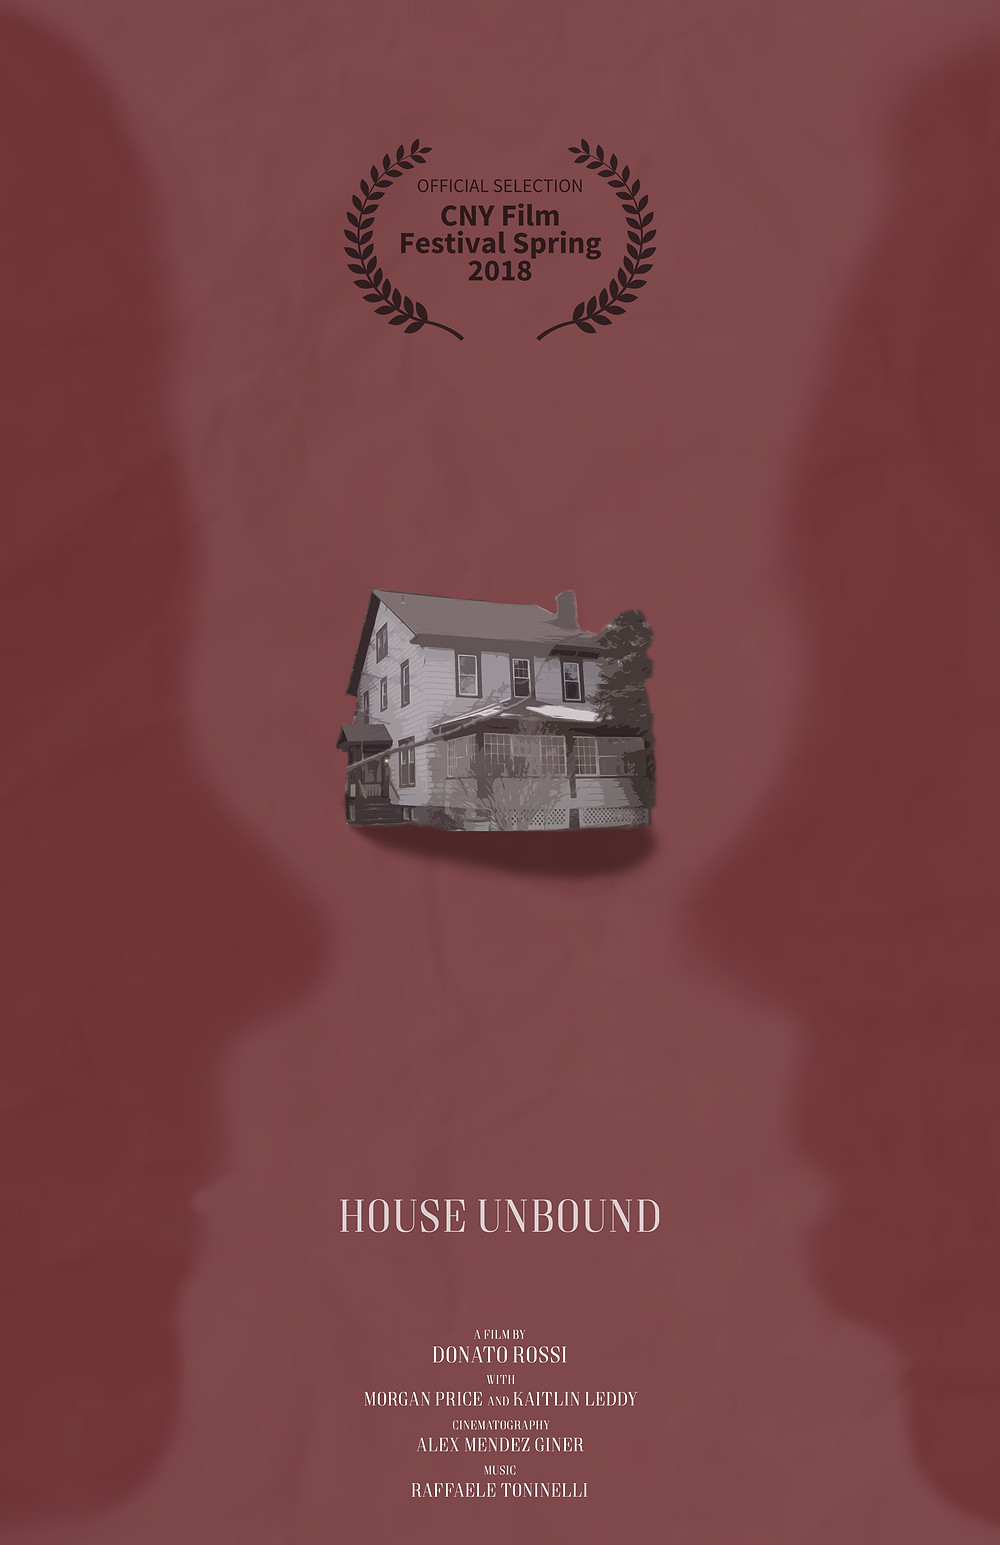 Excited to announce that my latest short-film House Unbound has been selected for the upcoming Central New York Festival.  The film will be screened at The Palace Theatre - 2384 James St, Syracuse, NY 13206, scheduled in the fourth section starting at 6:45 pm this Saturday.